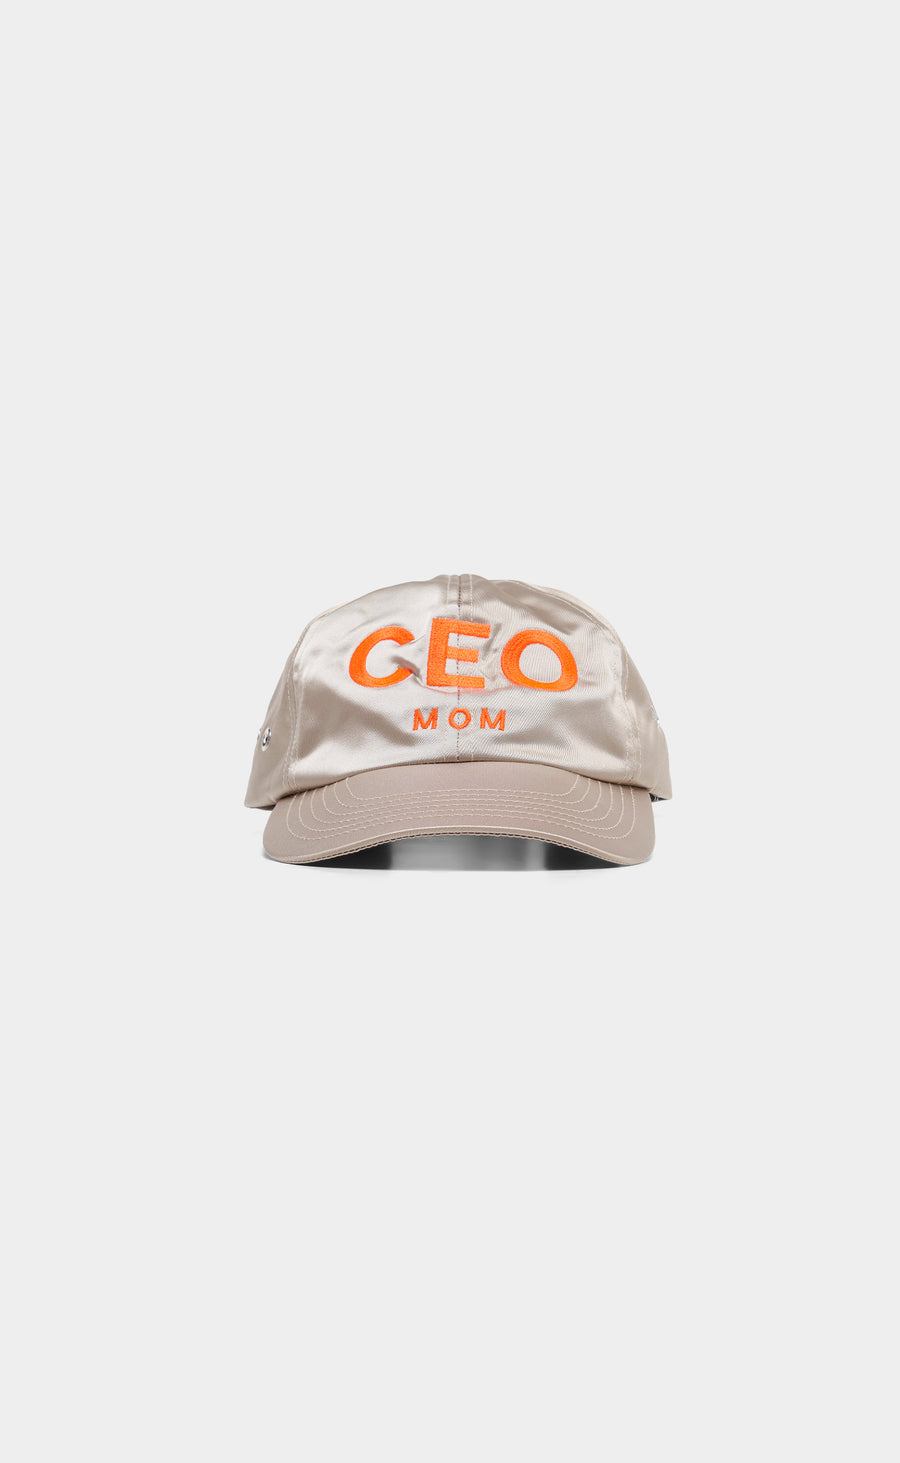 Cap Ceo Mom Off White